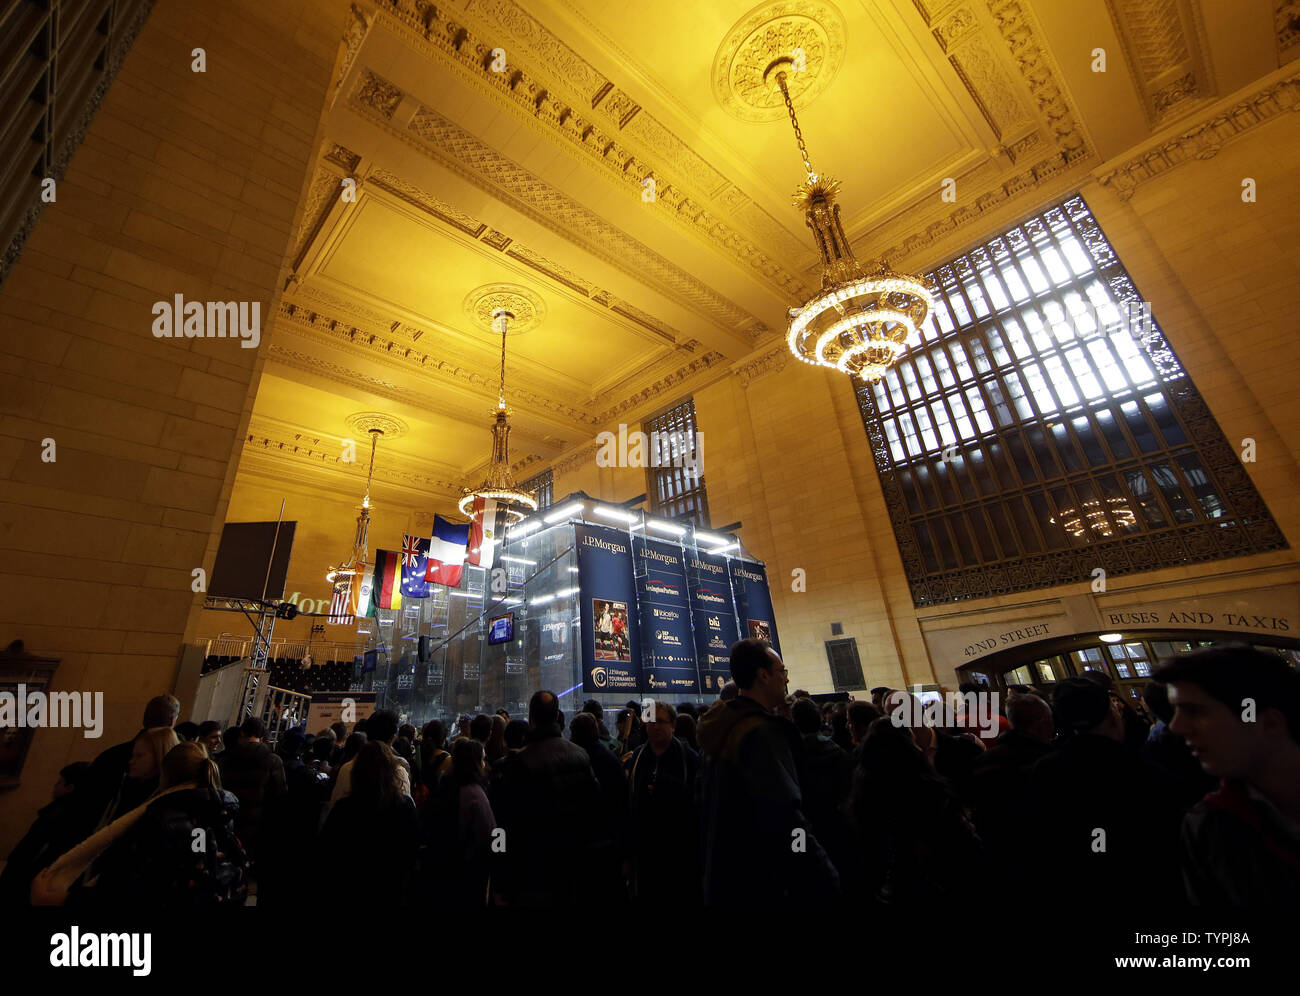 People gather around the court at JPMorgan Chase & Co.'s 18th annual  'Tournament of Champions' Professional Squash Tournament in Grand Central Terminal in New York City on January 16, 2015. The annual tournament is scheduled to continue through January 23rd.      Photo by John Angelillo/UPI - Stock Image